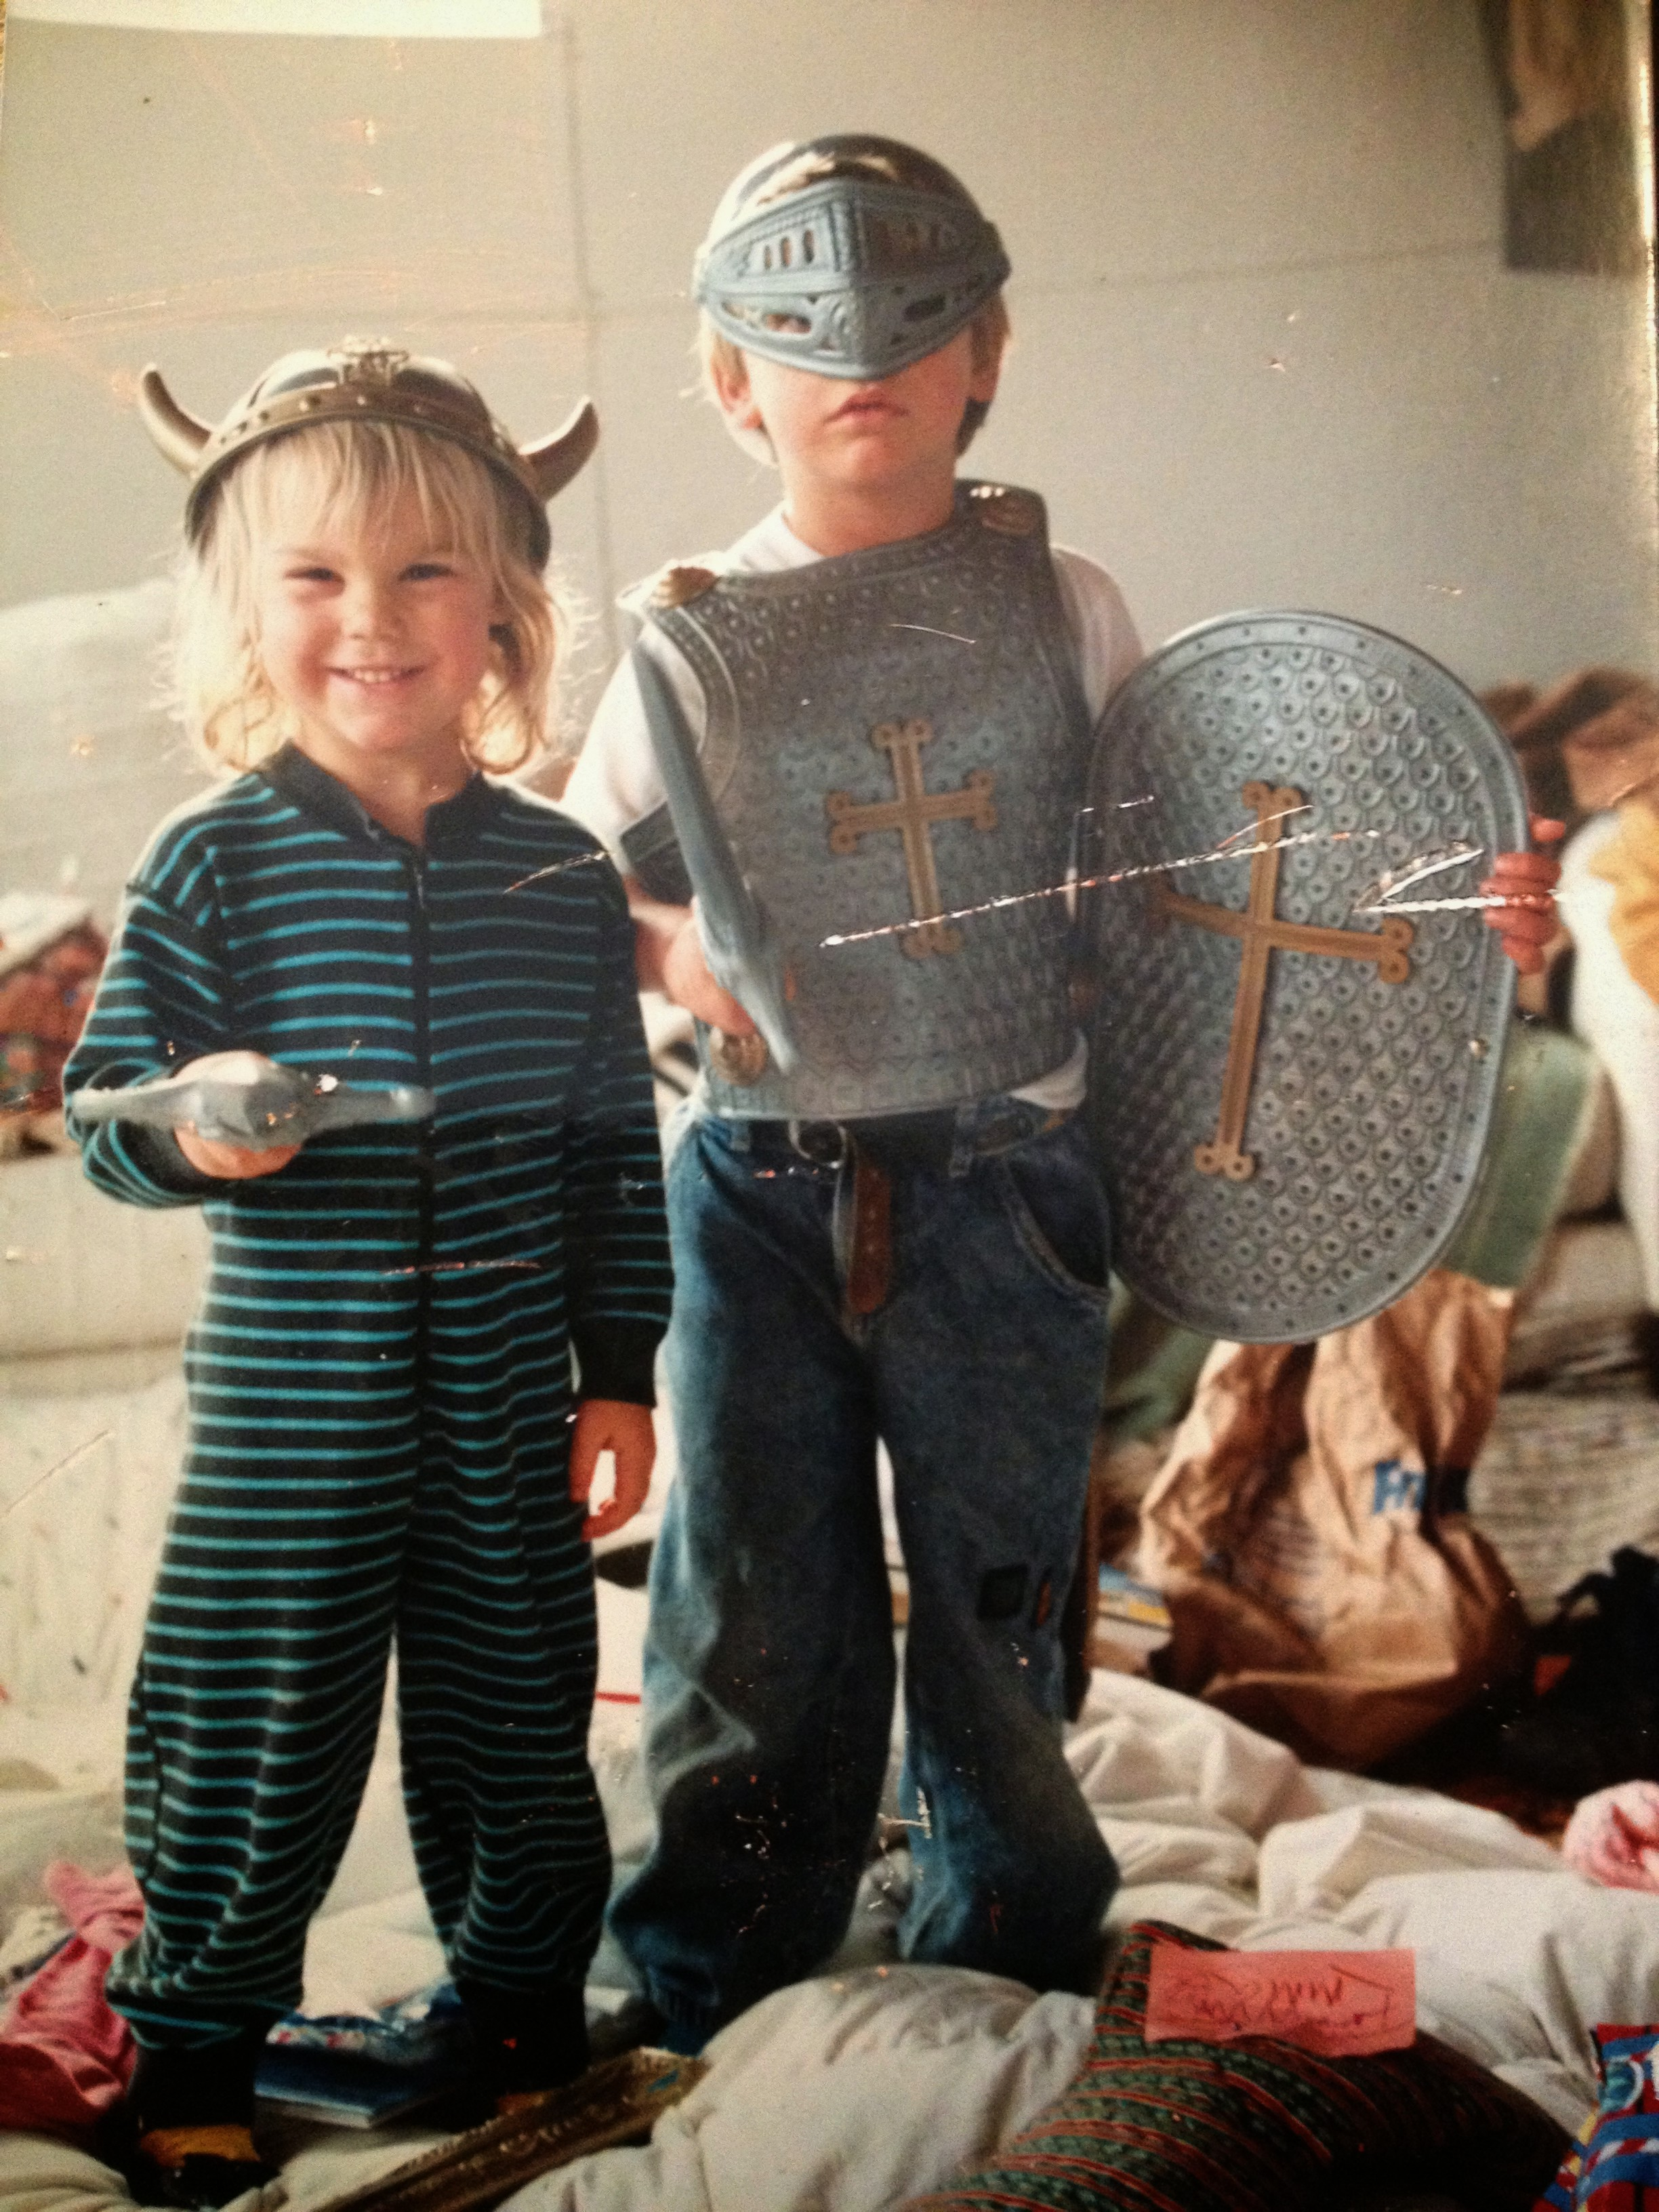 My story starts in the 90's (I'm the one with the horns). - I'm a little girl, living in a cabin in the woods in Southern Oregon, and all I want is to be a writer…and to have a puppy. So I grow up and I go to school in Boston to become a writer. Then I realize writers don't make any money.I try to adjust to the writing lifestyle by eating lots of ramen and refried beans. I realize I hate ramen. And rent in Boston is expensive. So I get a real job. And I buy my first pair of work heels. They're shiny patent leather. Every morning, my heels go click-click-click down a big corporate hallway.